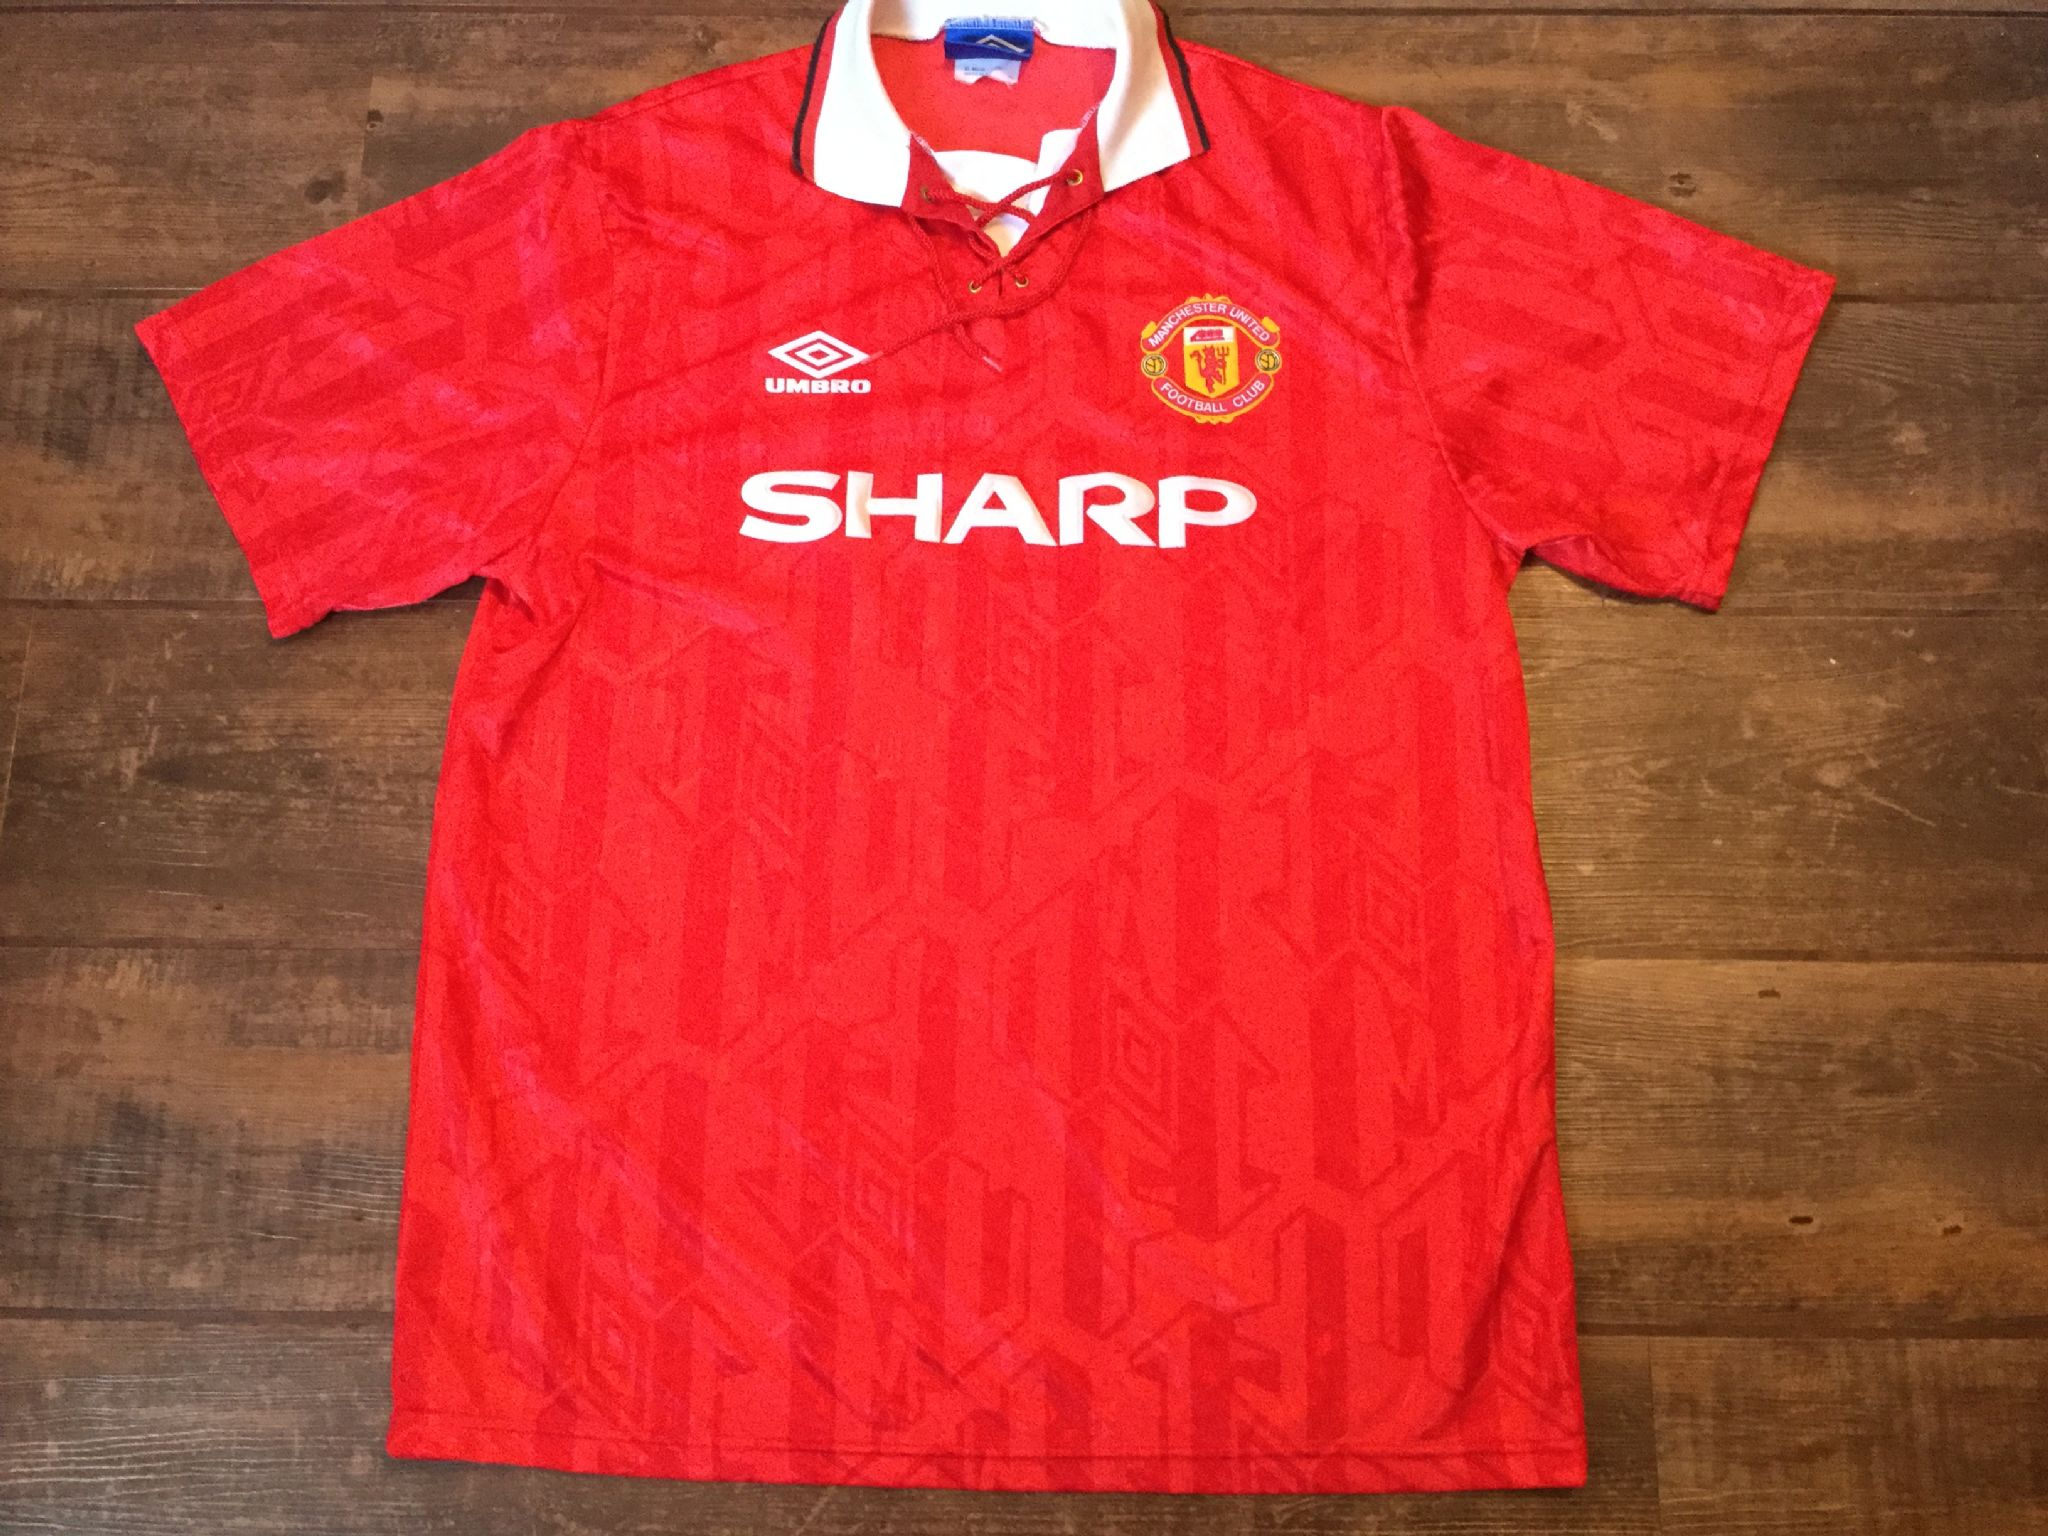 low priced 96525 f154b Global Classic Football Shirts | 1993 Manchester United ...